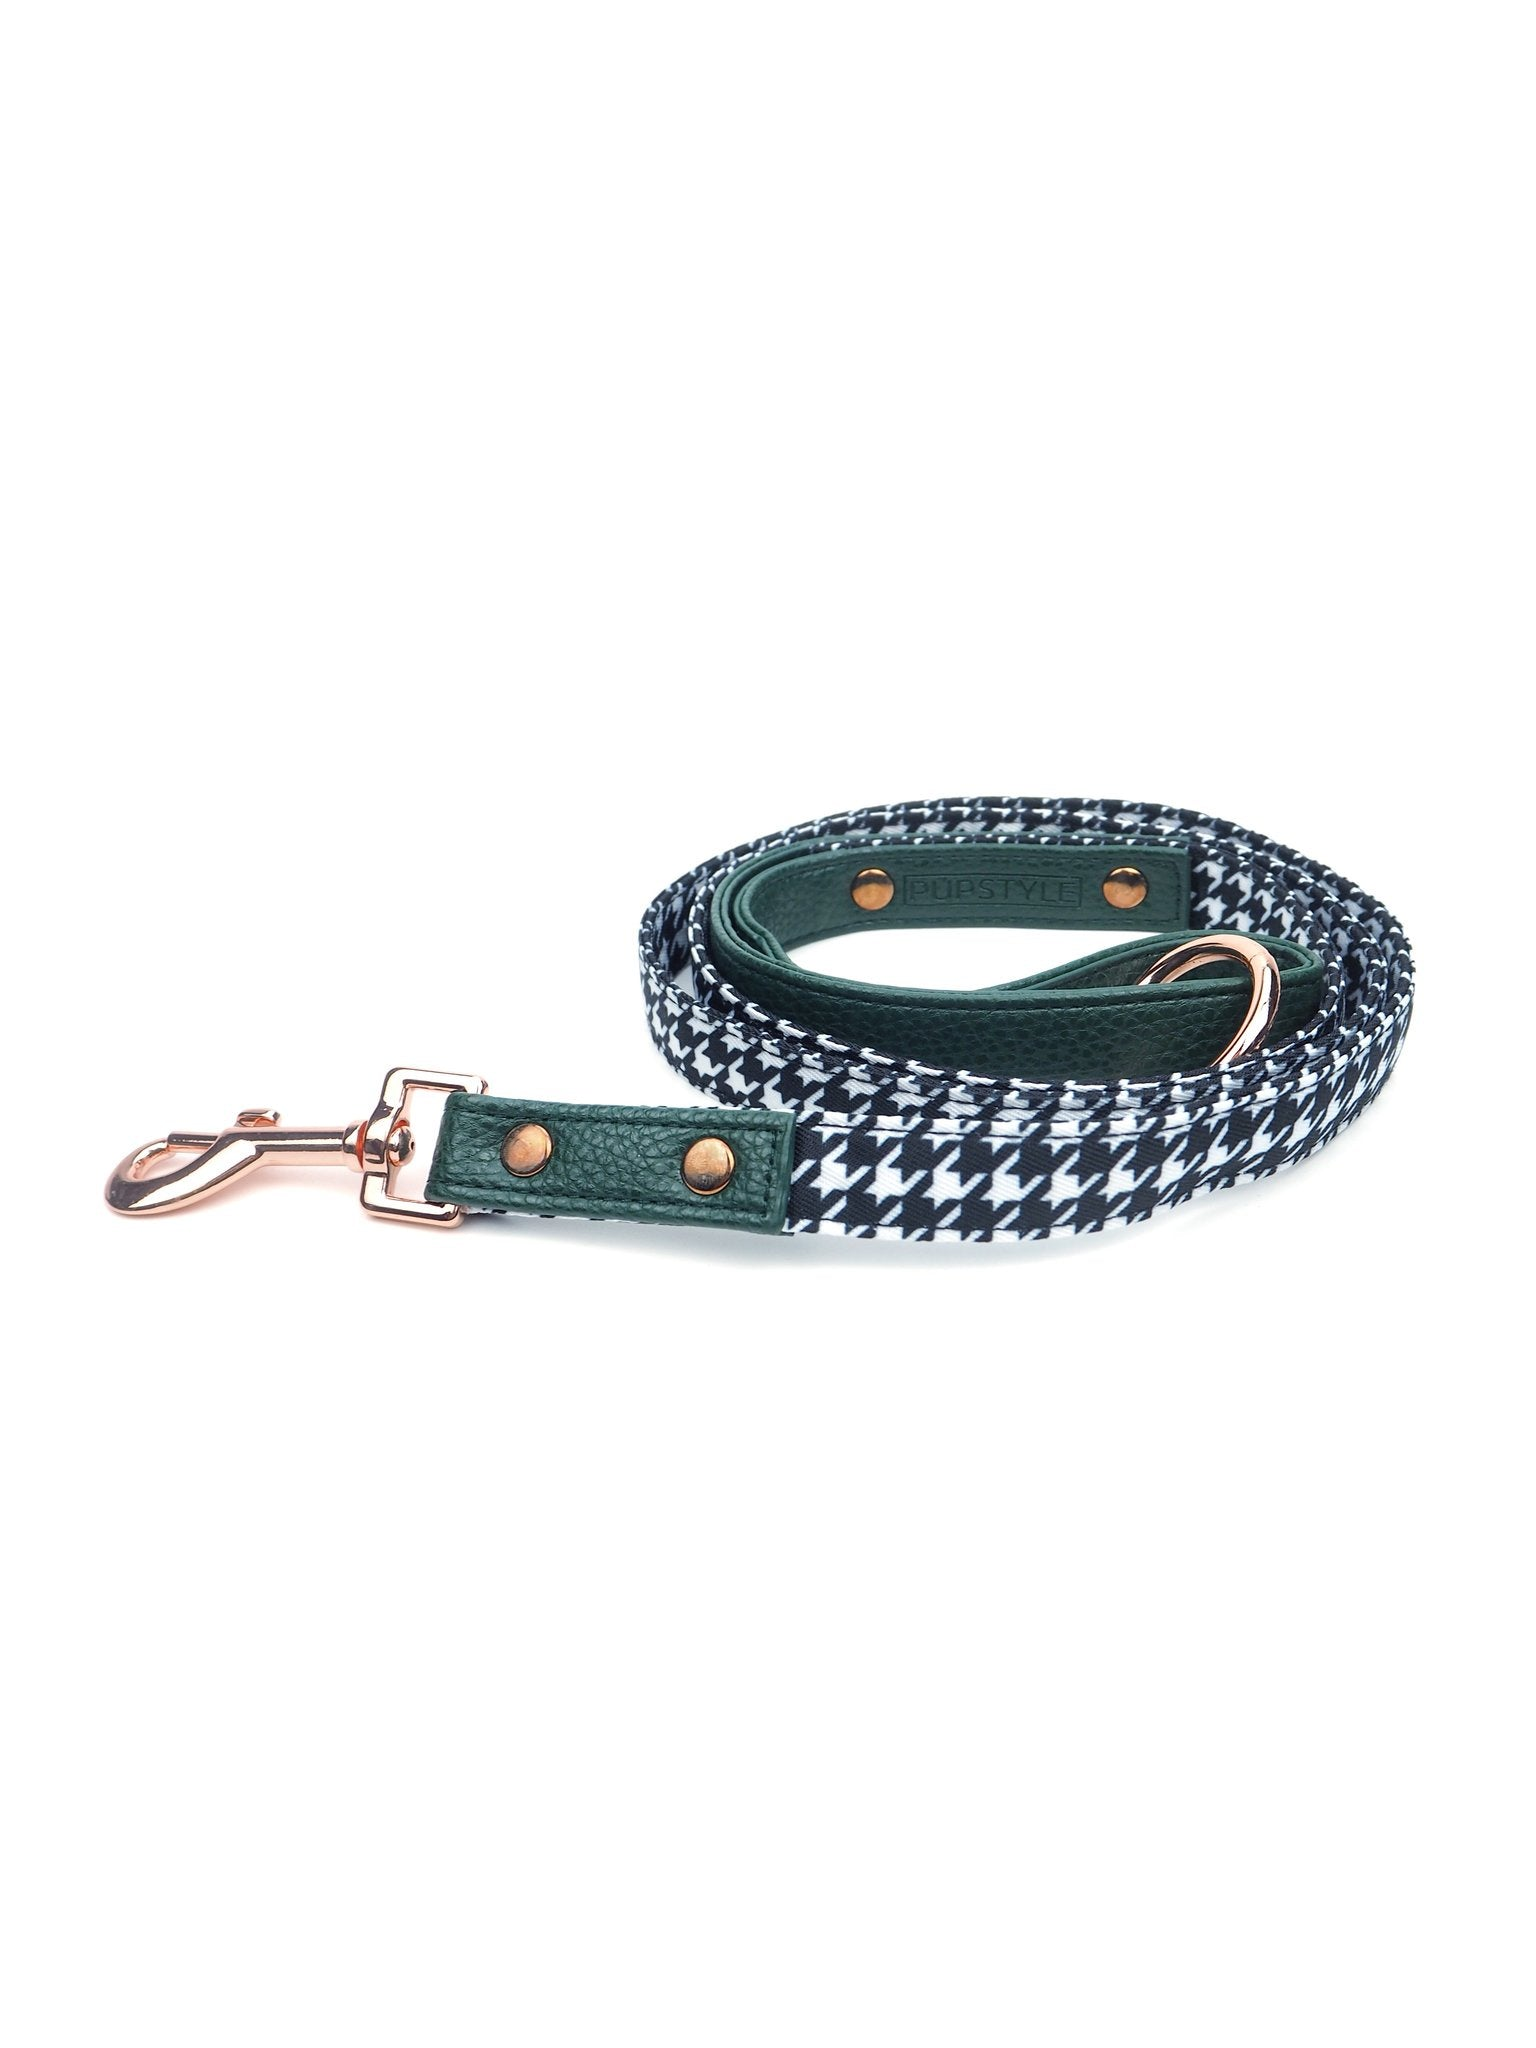 Emerald Envy Leash